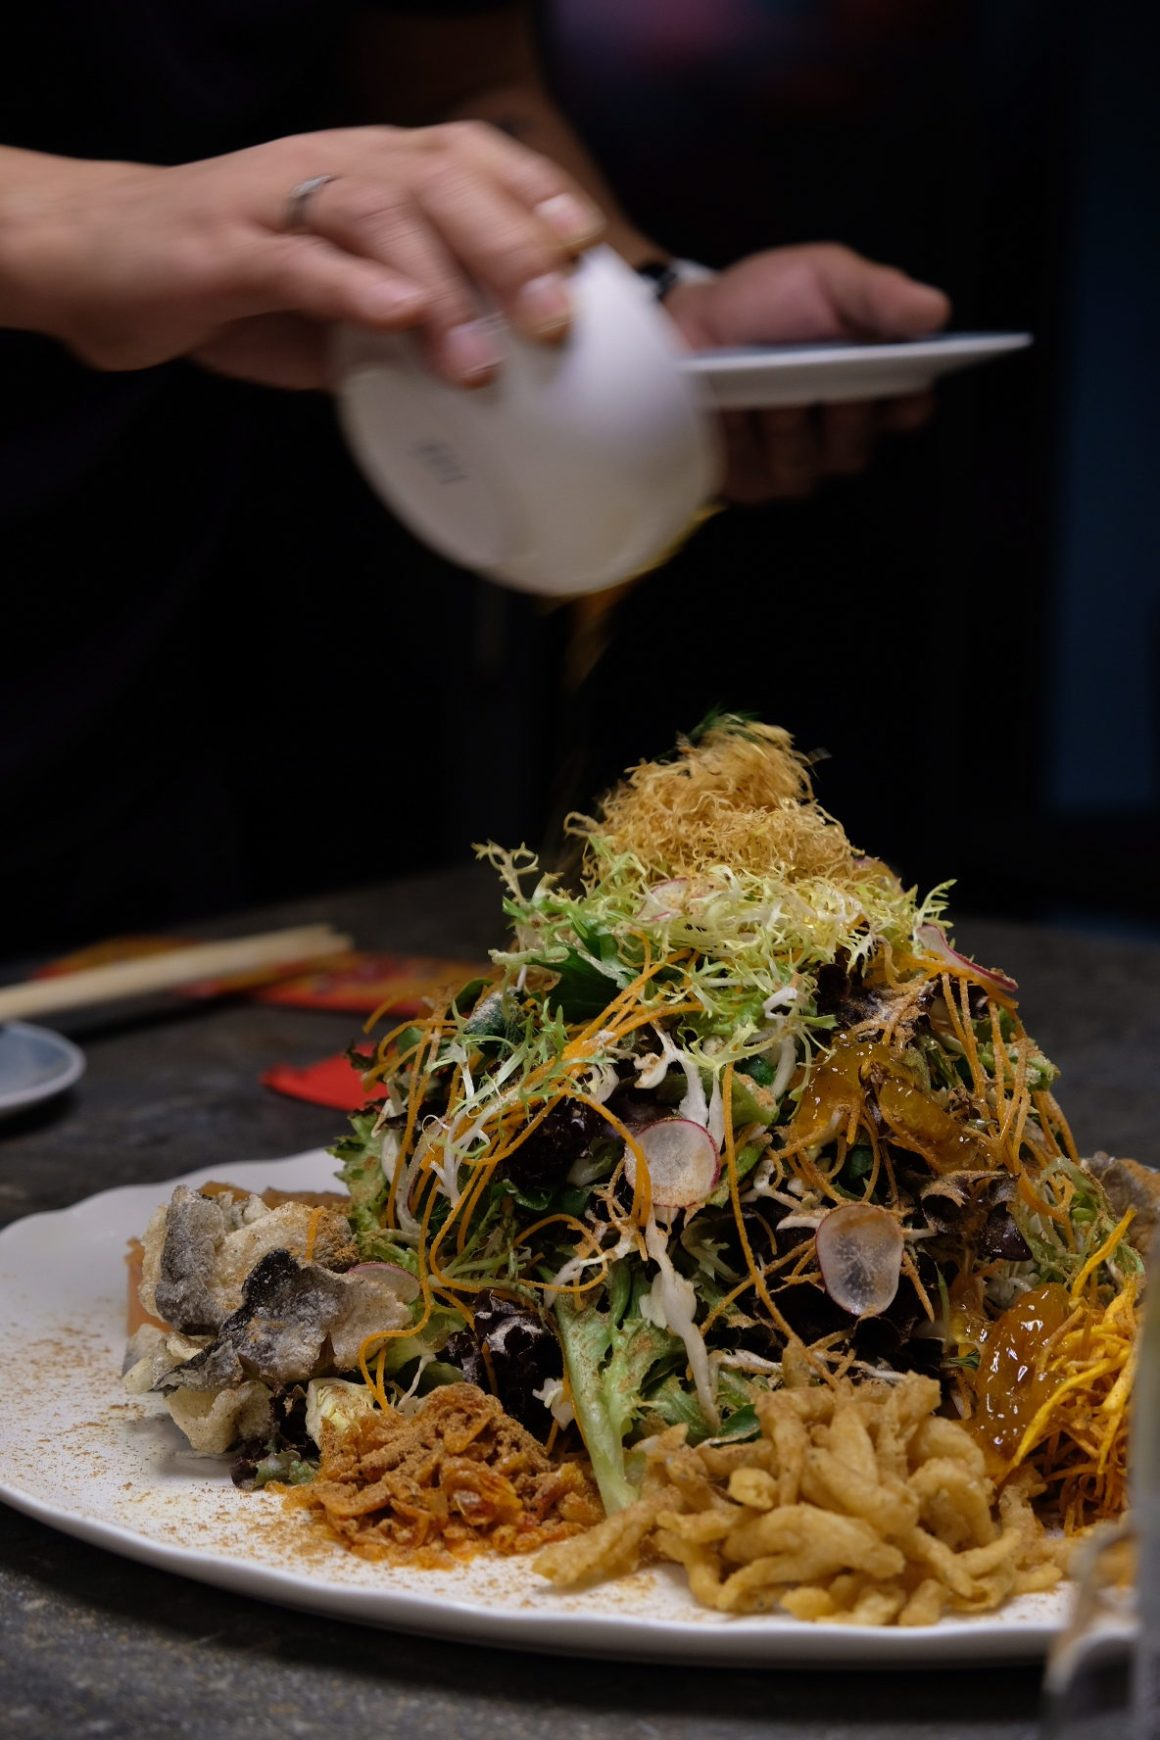 Best restaurants For Your Chinese New Year 2019 Reunion Dinner In Singapore - Blue Lotus Yu Sheng ($48++or $68++)